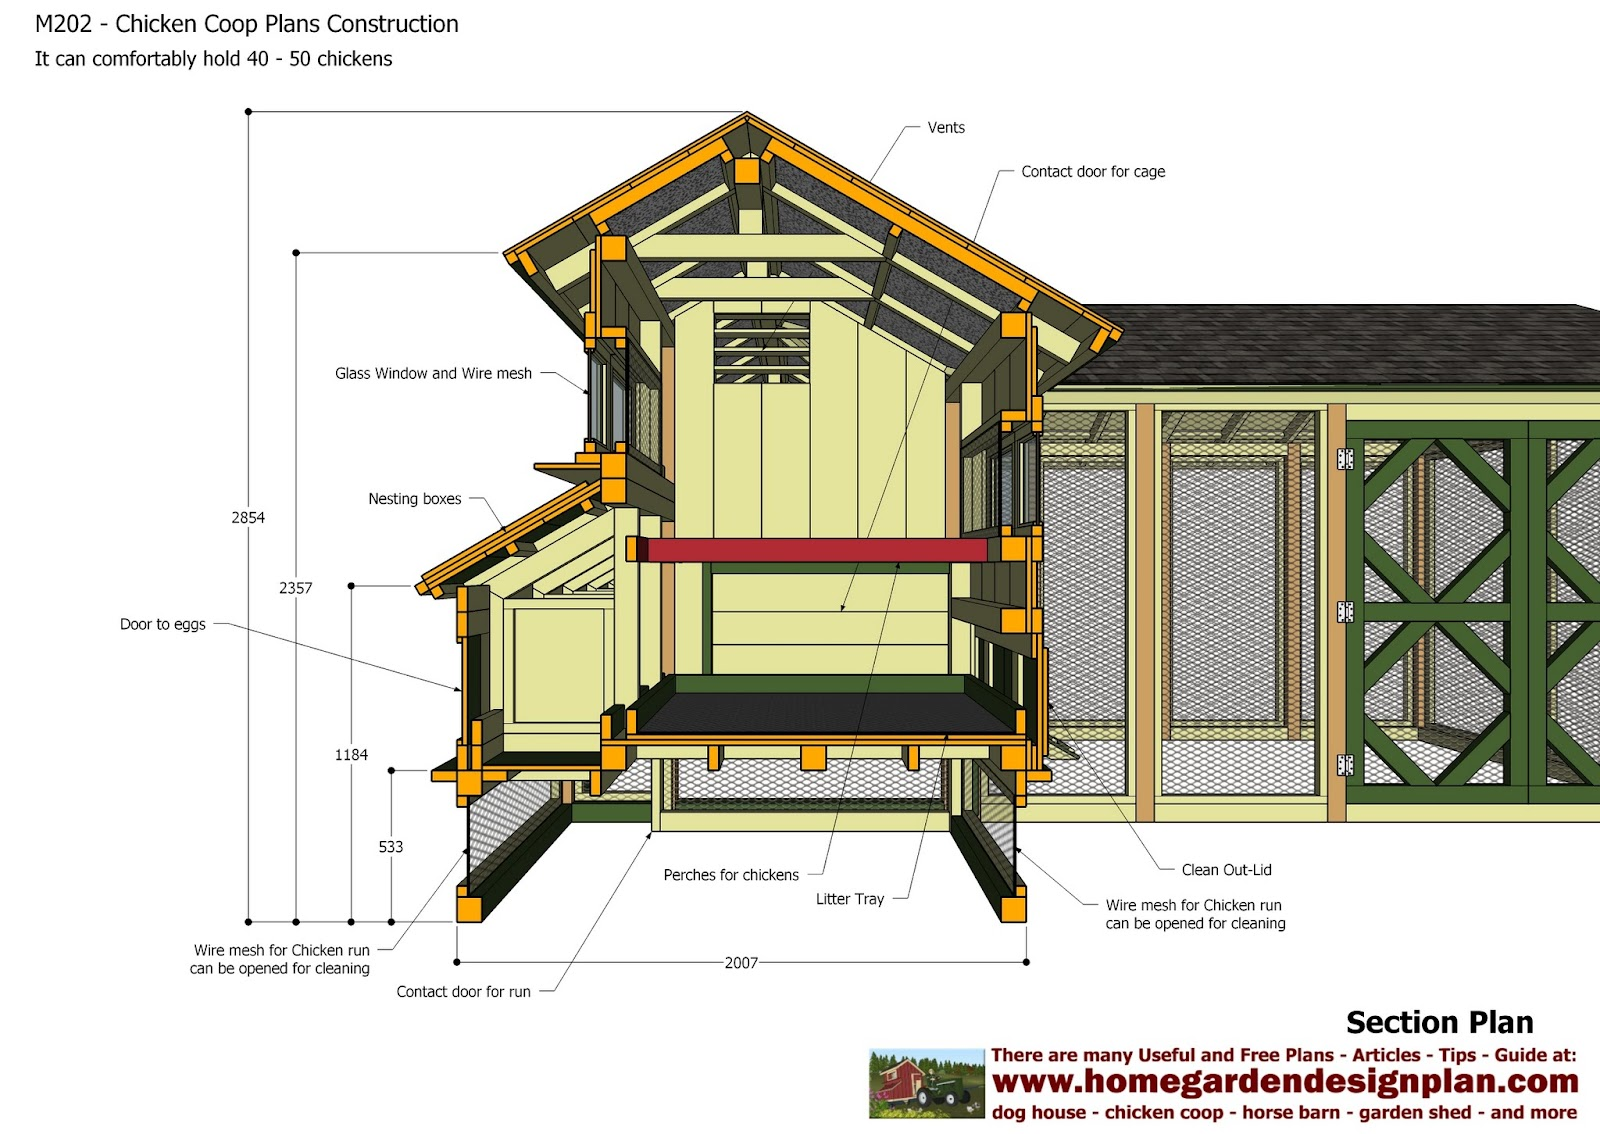 Home Garden Plans M202 Chicken Coop Plans Construction